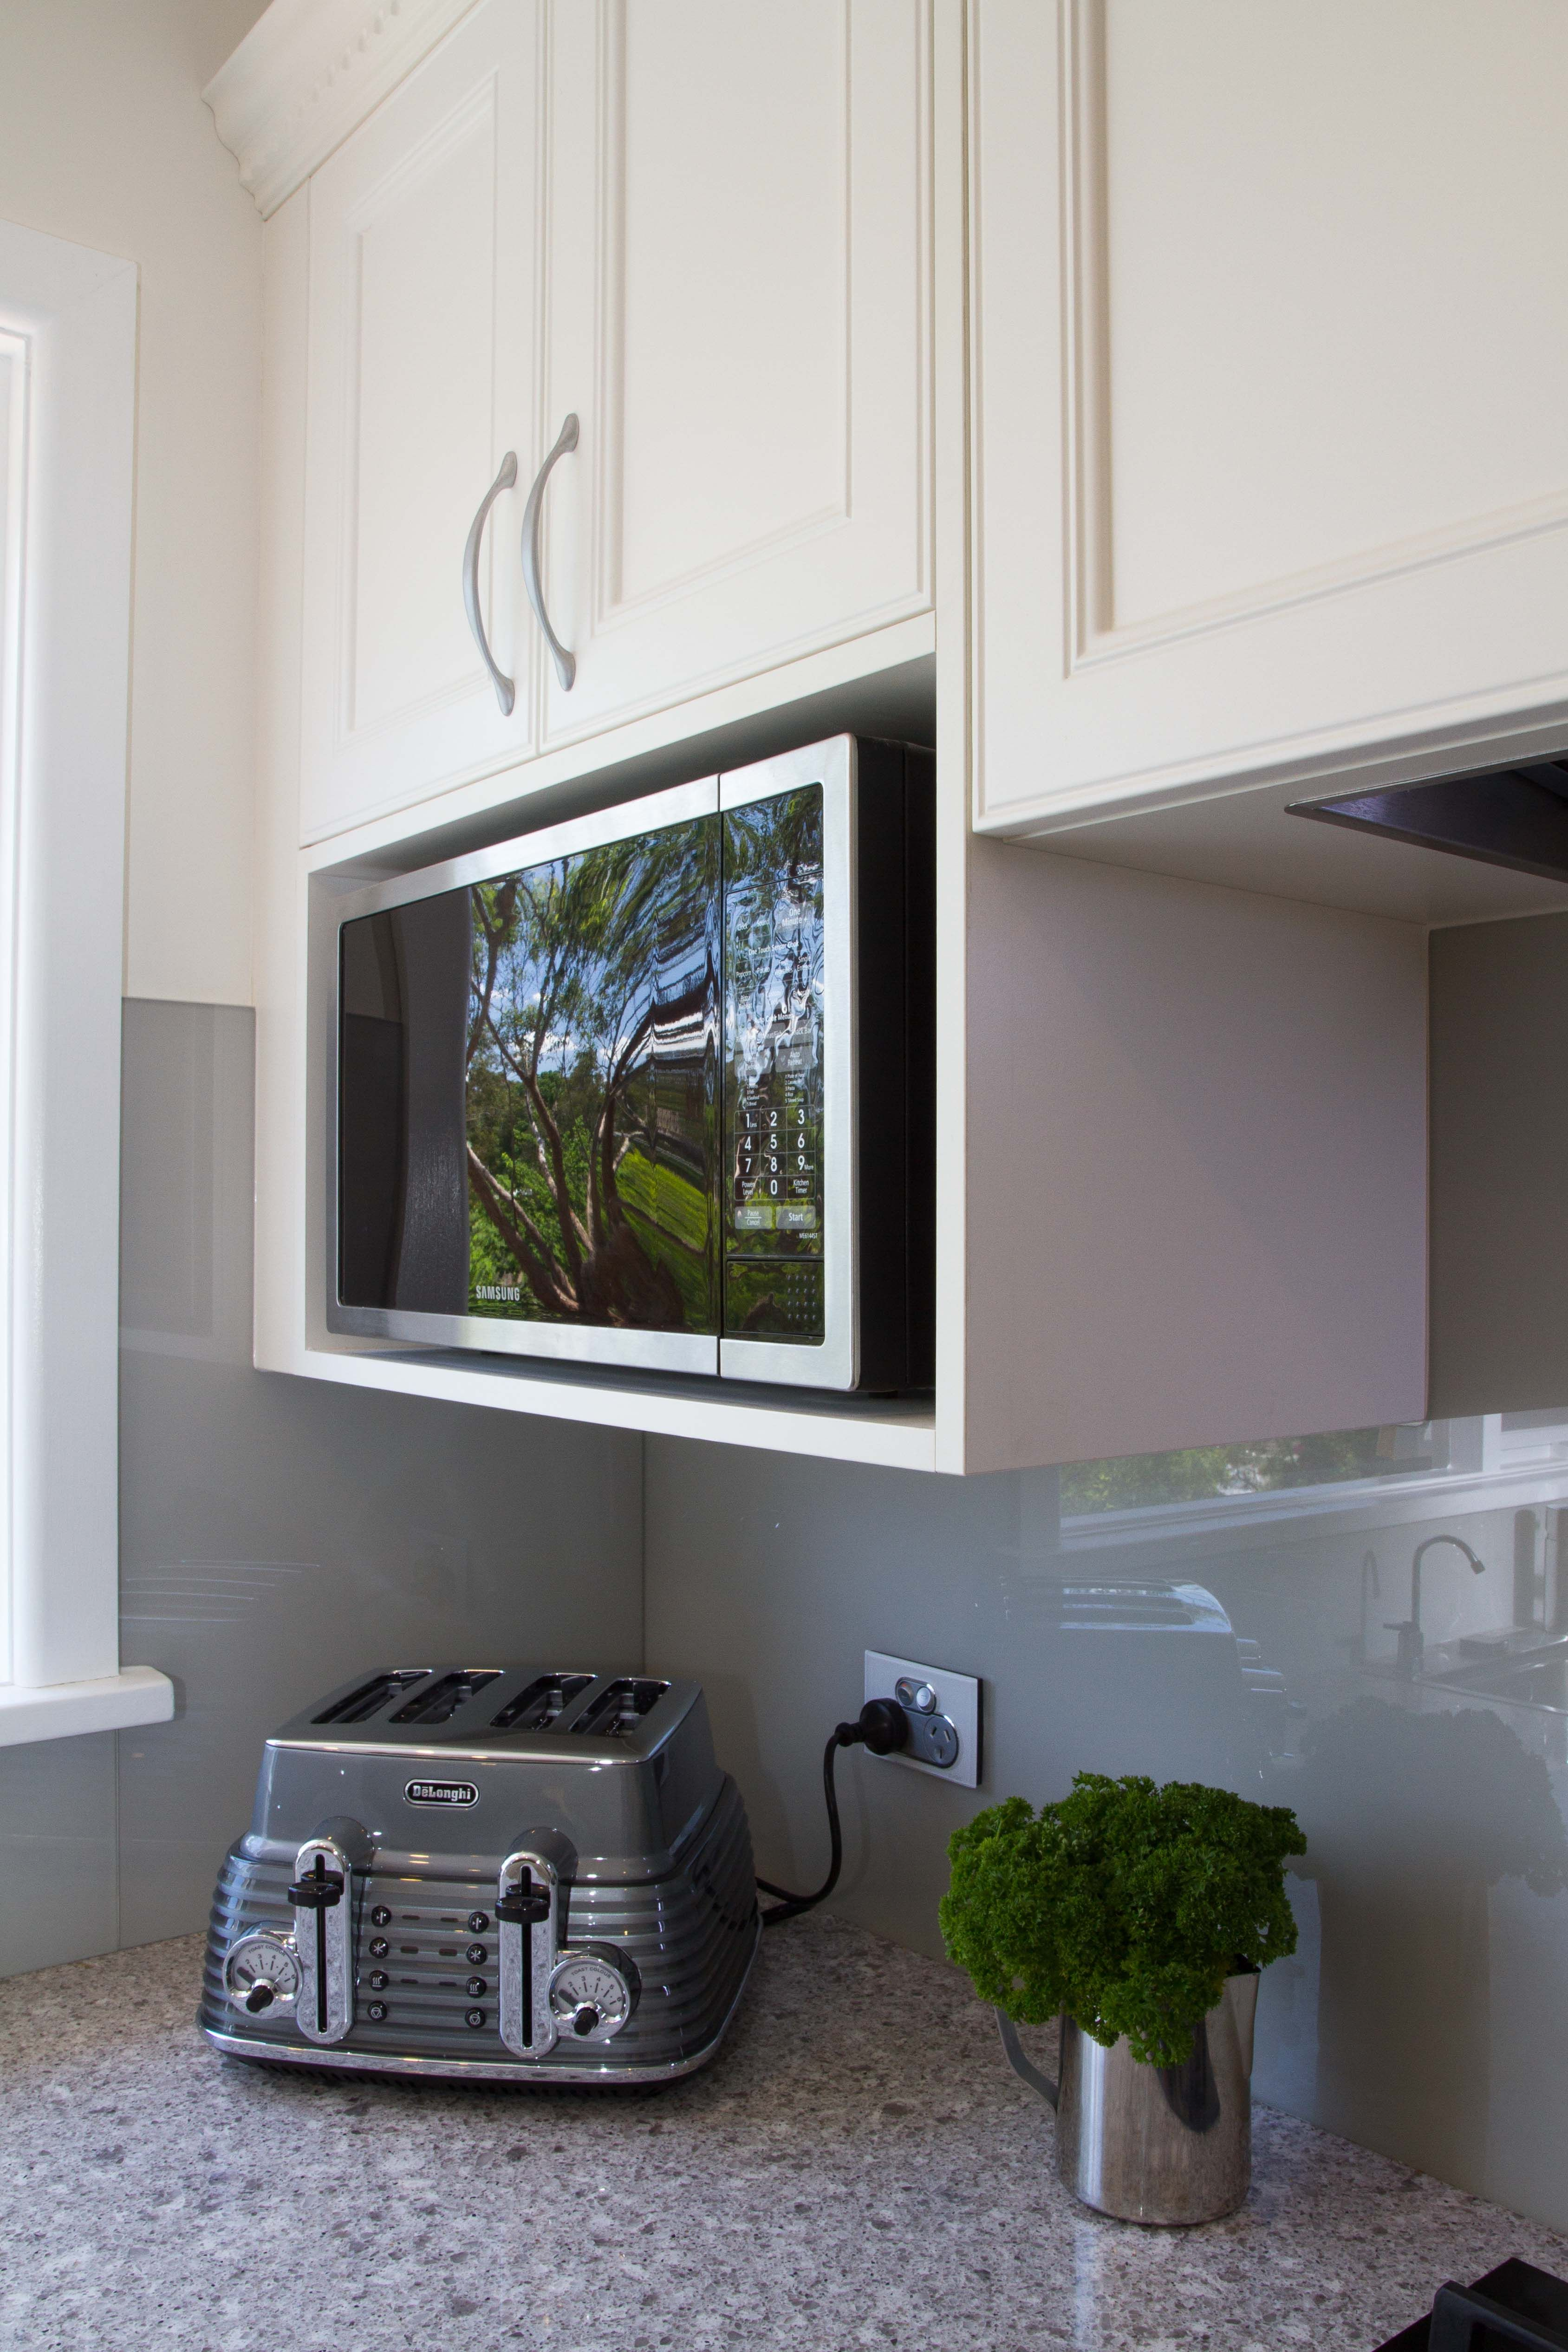 Laundry Service Traditional Kitchen Overhead Microwave Cabinet Wwwthekitchendesigncentrecomau